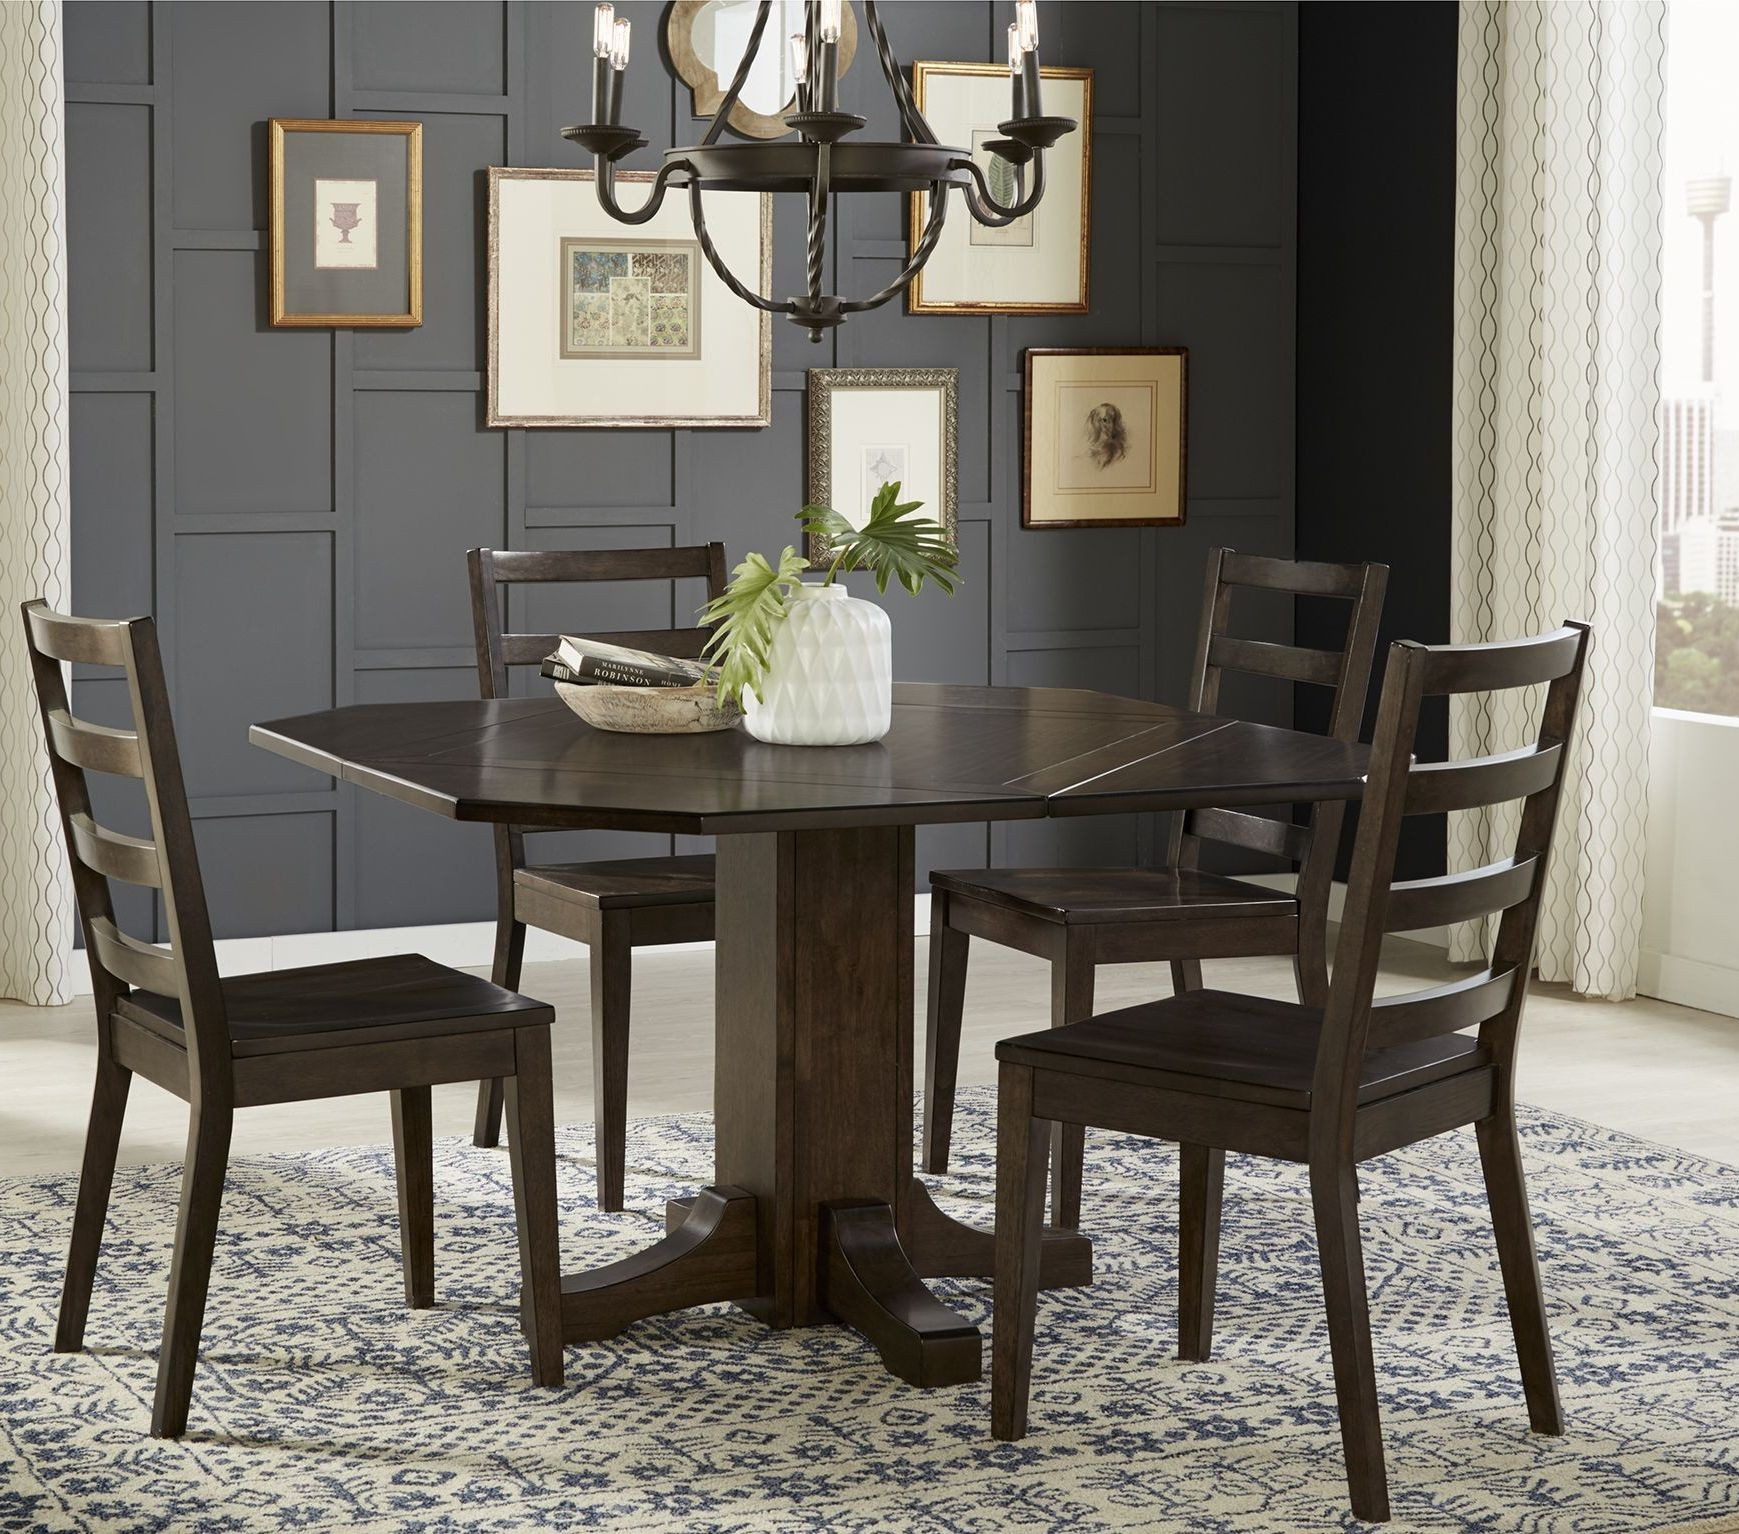 Dark Dining Room: Brooklyn Heights Dark Grey Extendable Pedestal Dining Room